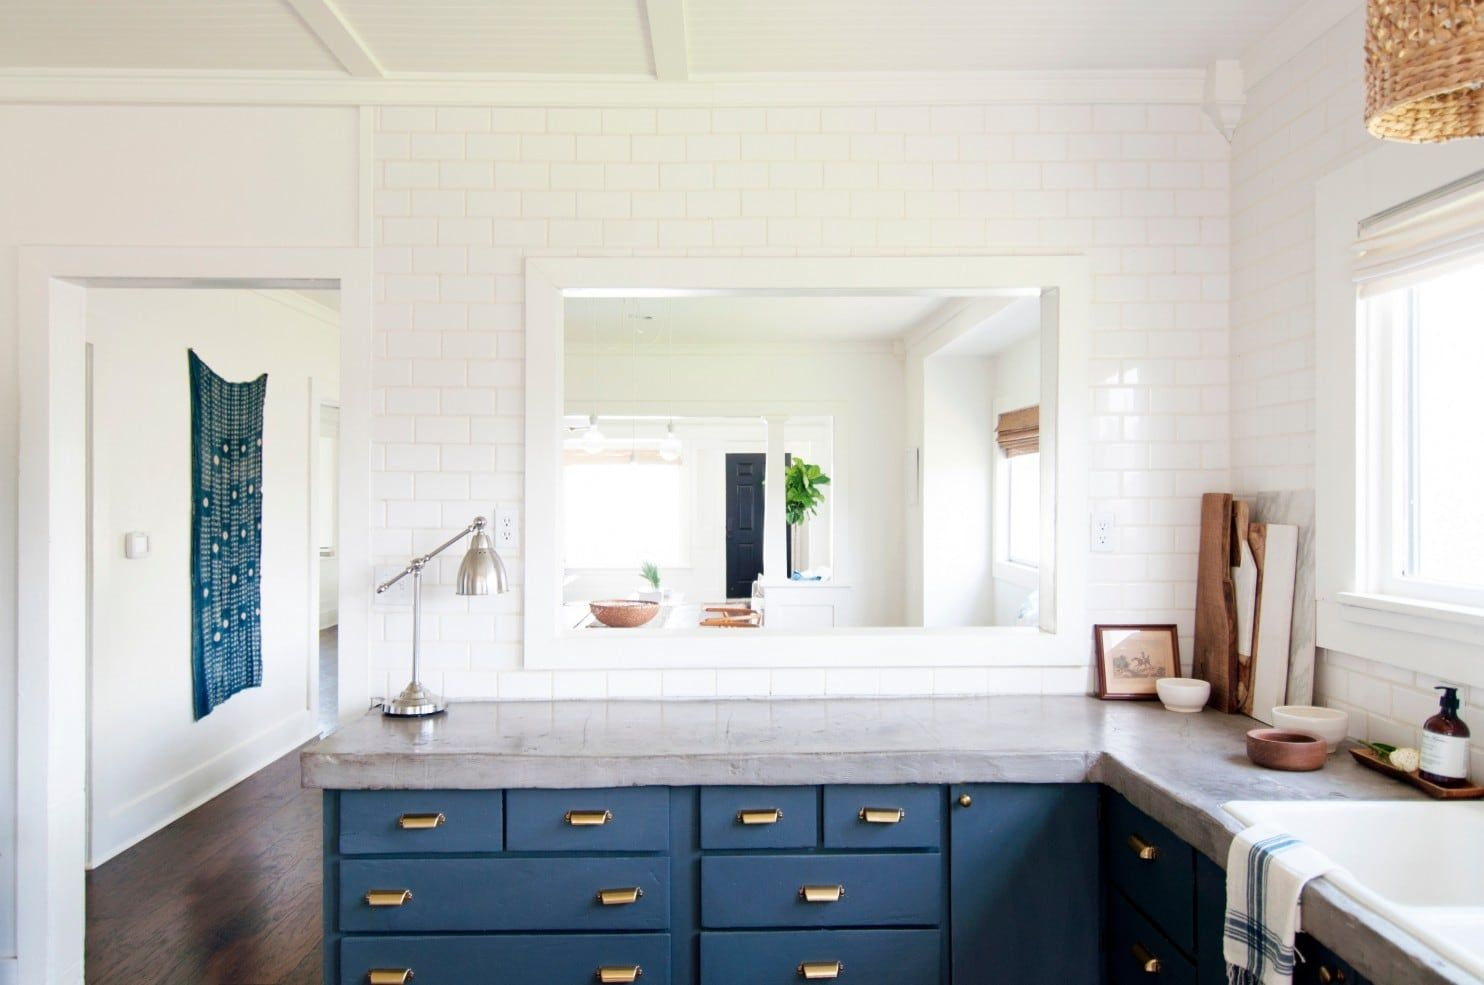 10 home design trends to watch out for in 2018, according to Houzz ...